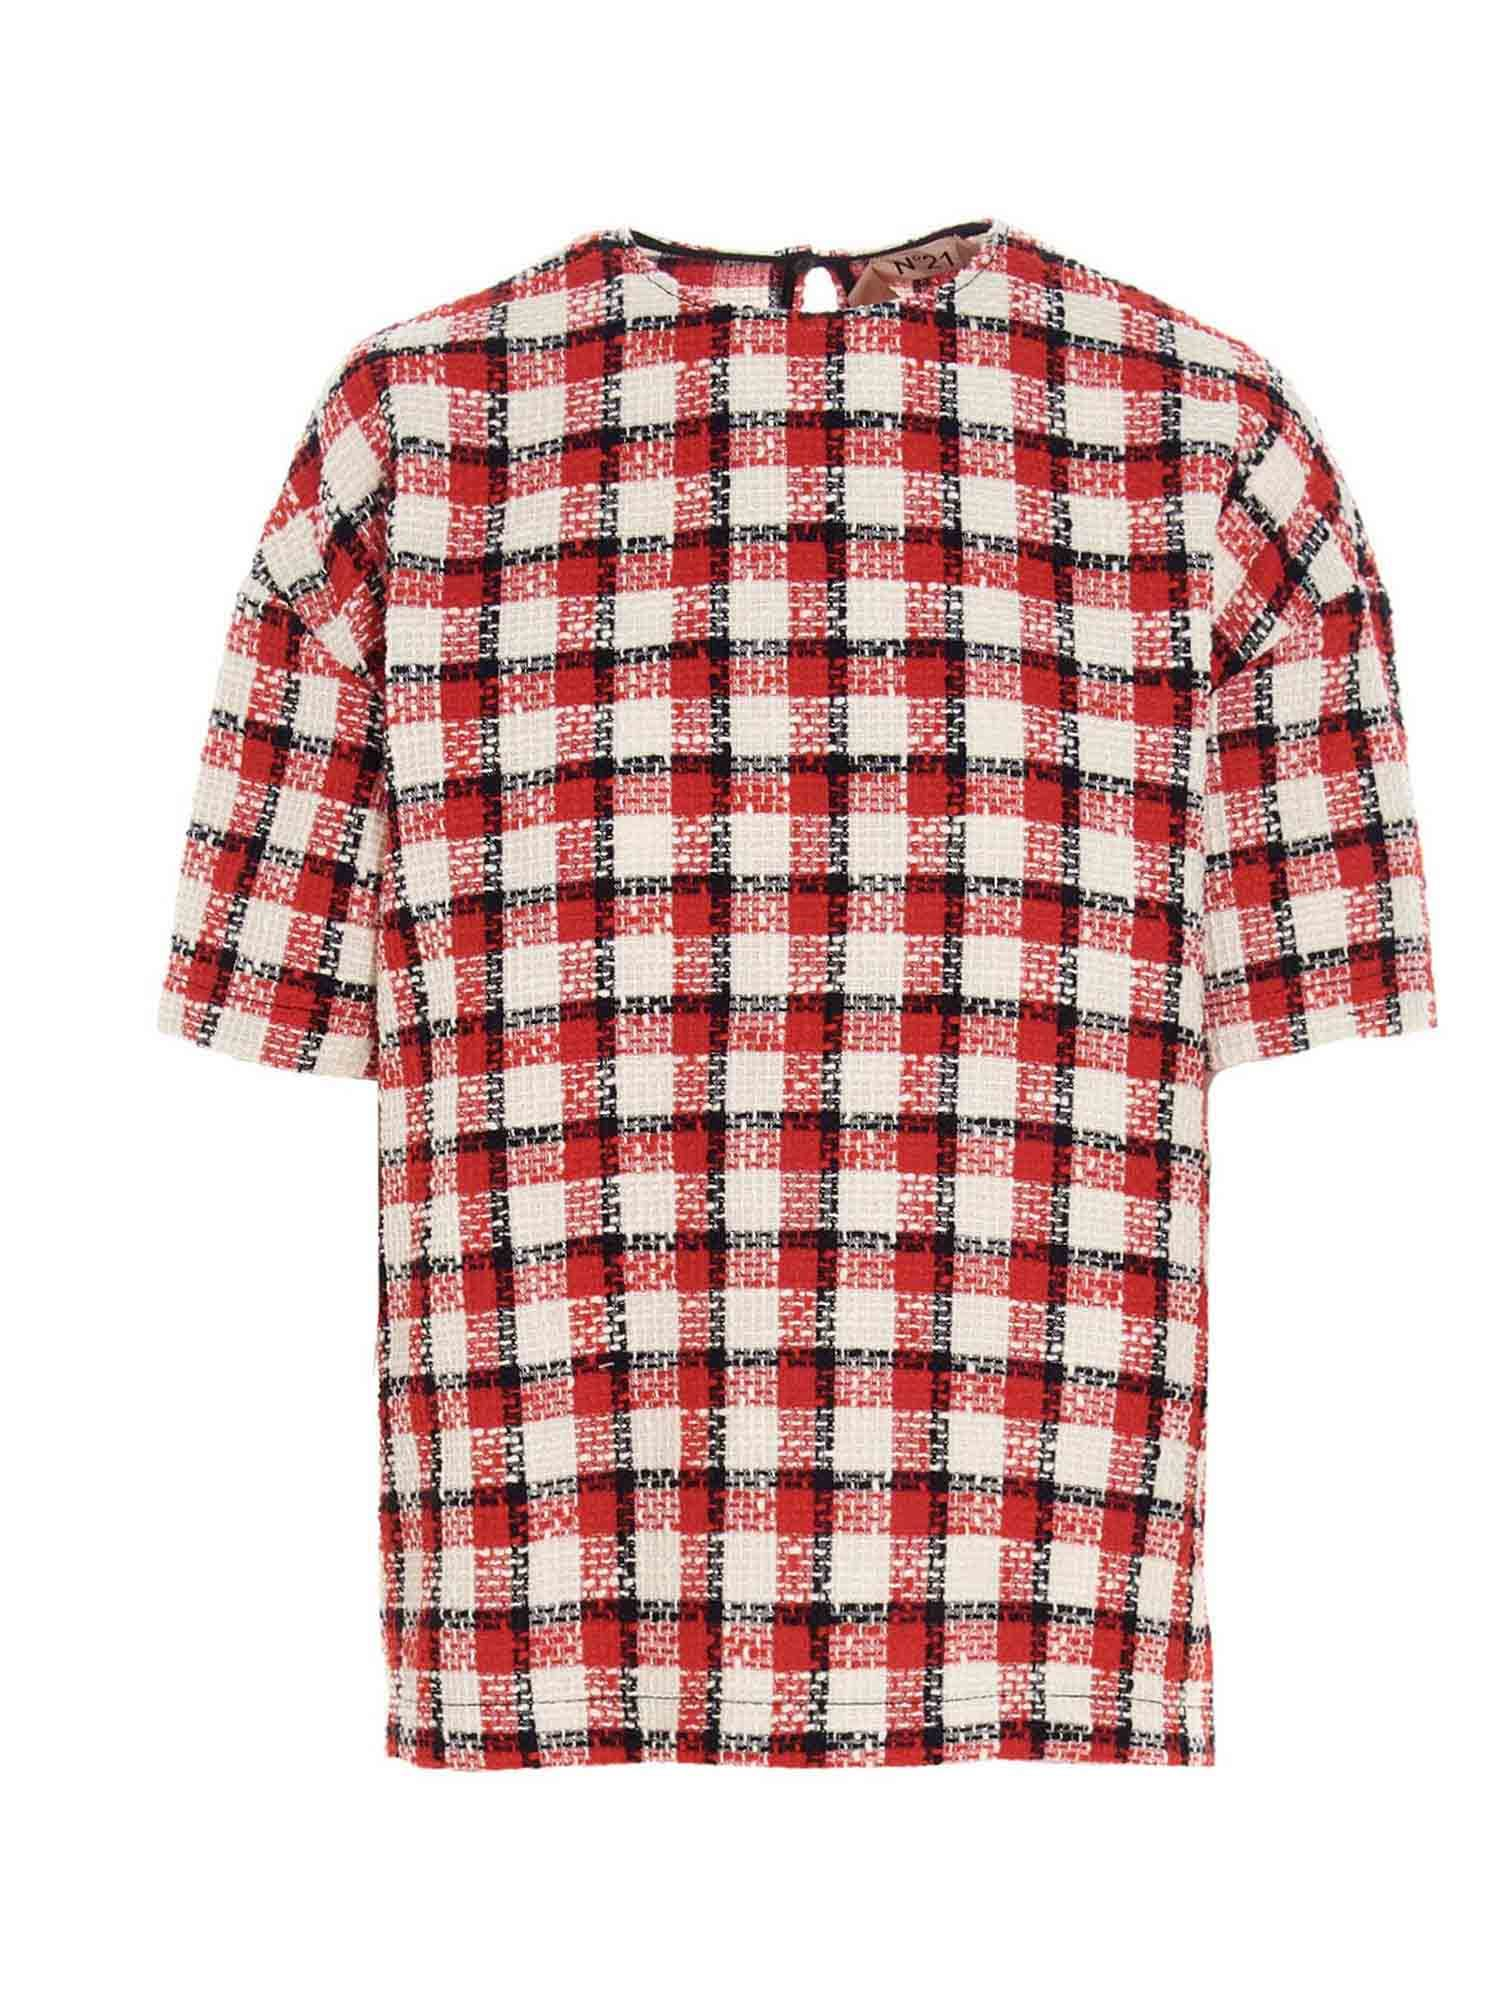 N°21 Blouses CHECKED TWEED T-SHIRT IN RED